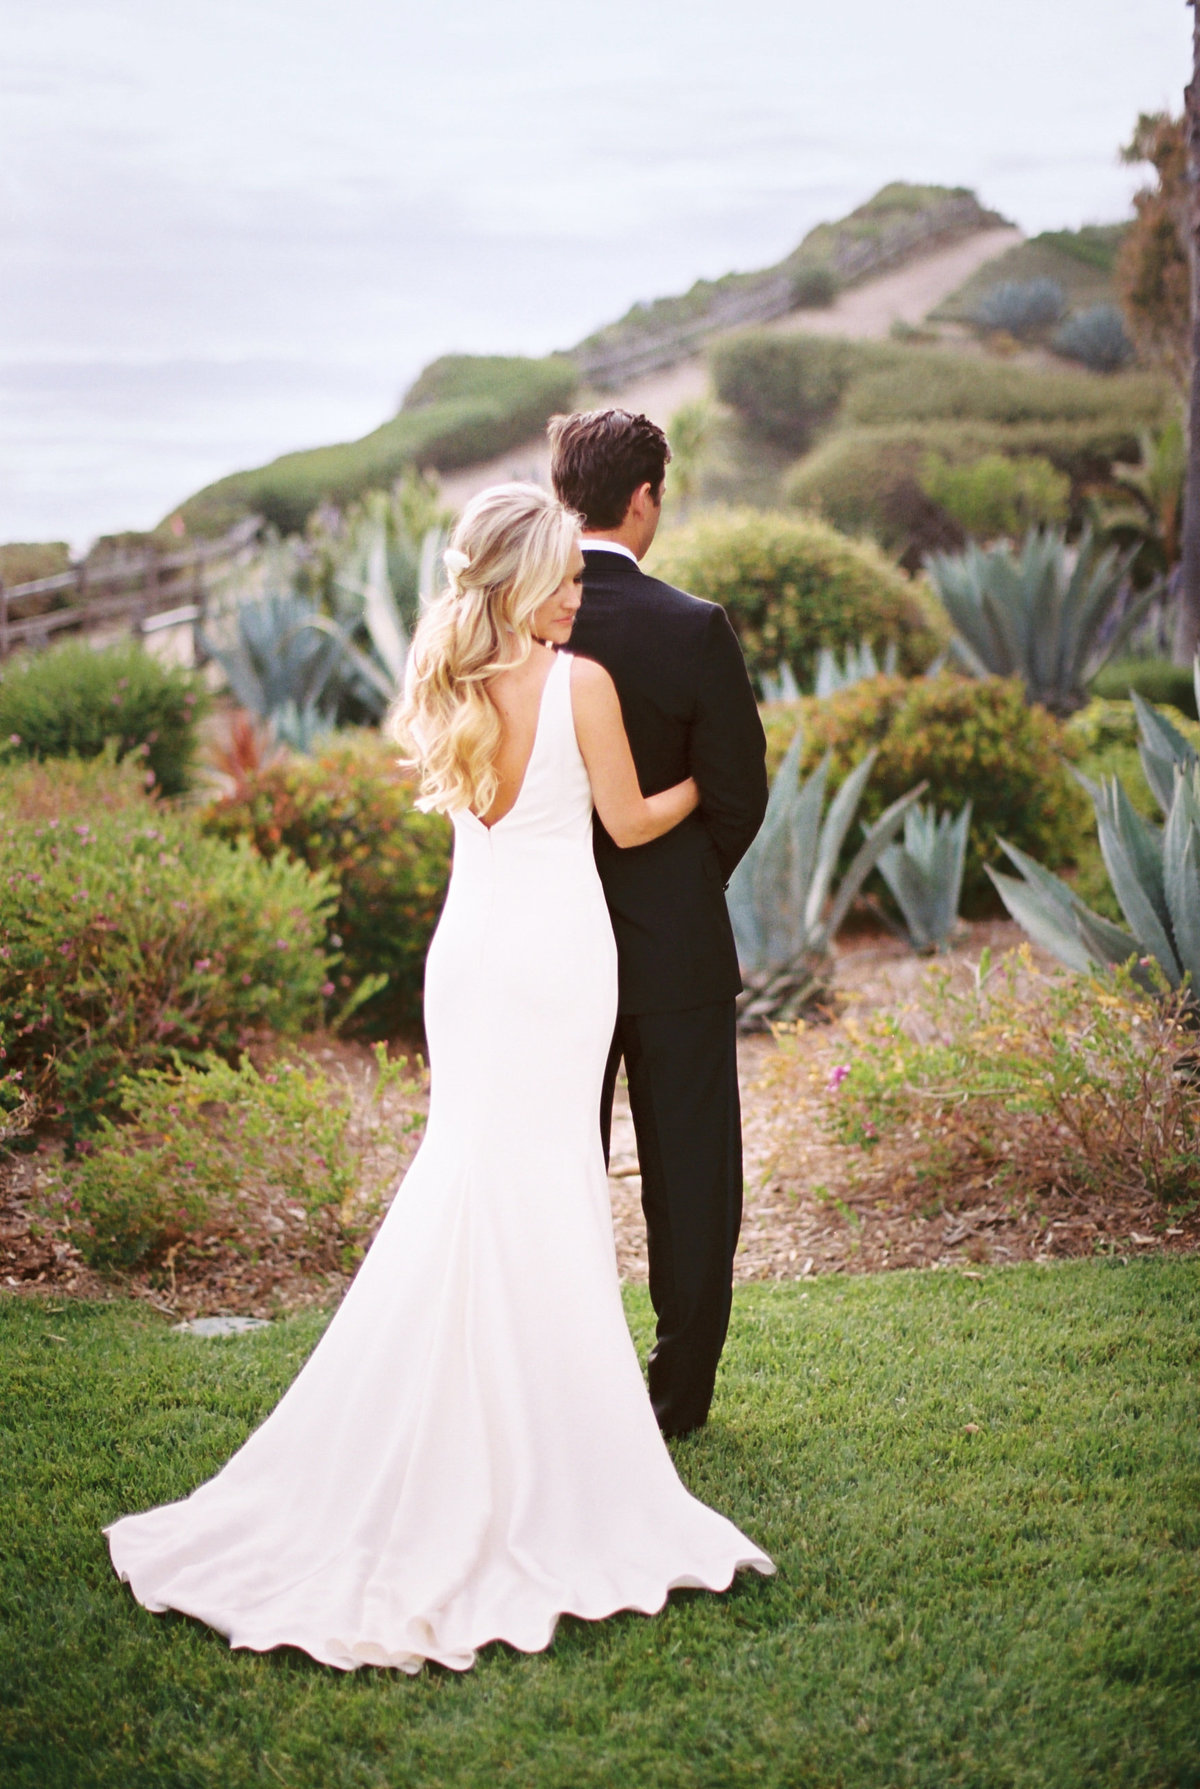 christianne_taylor_marika_fedalen_brian_olsen_bacara_weddings_wedding_christianne_taylor-11